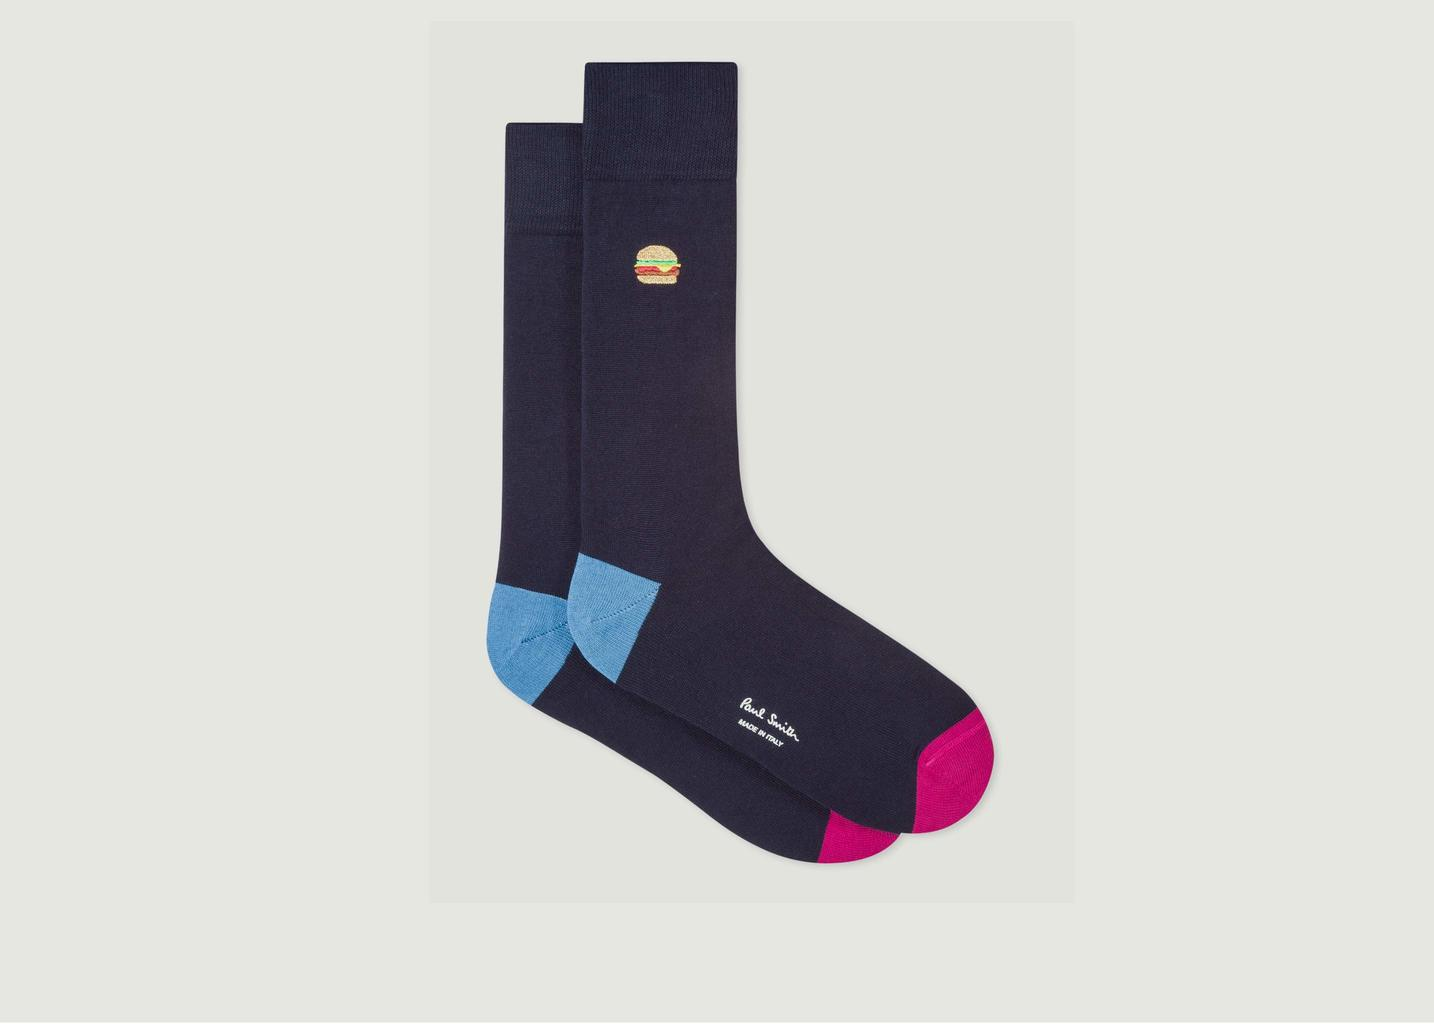 Chaussettes Brodées Burger - PS by PAUL SMITH